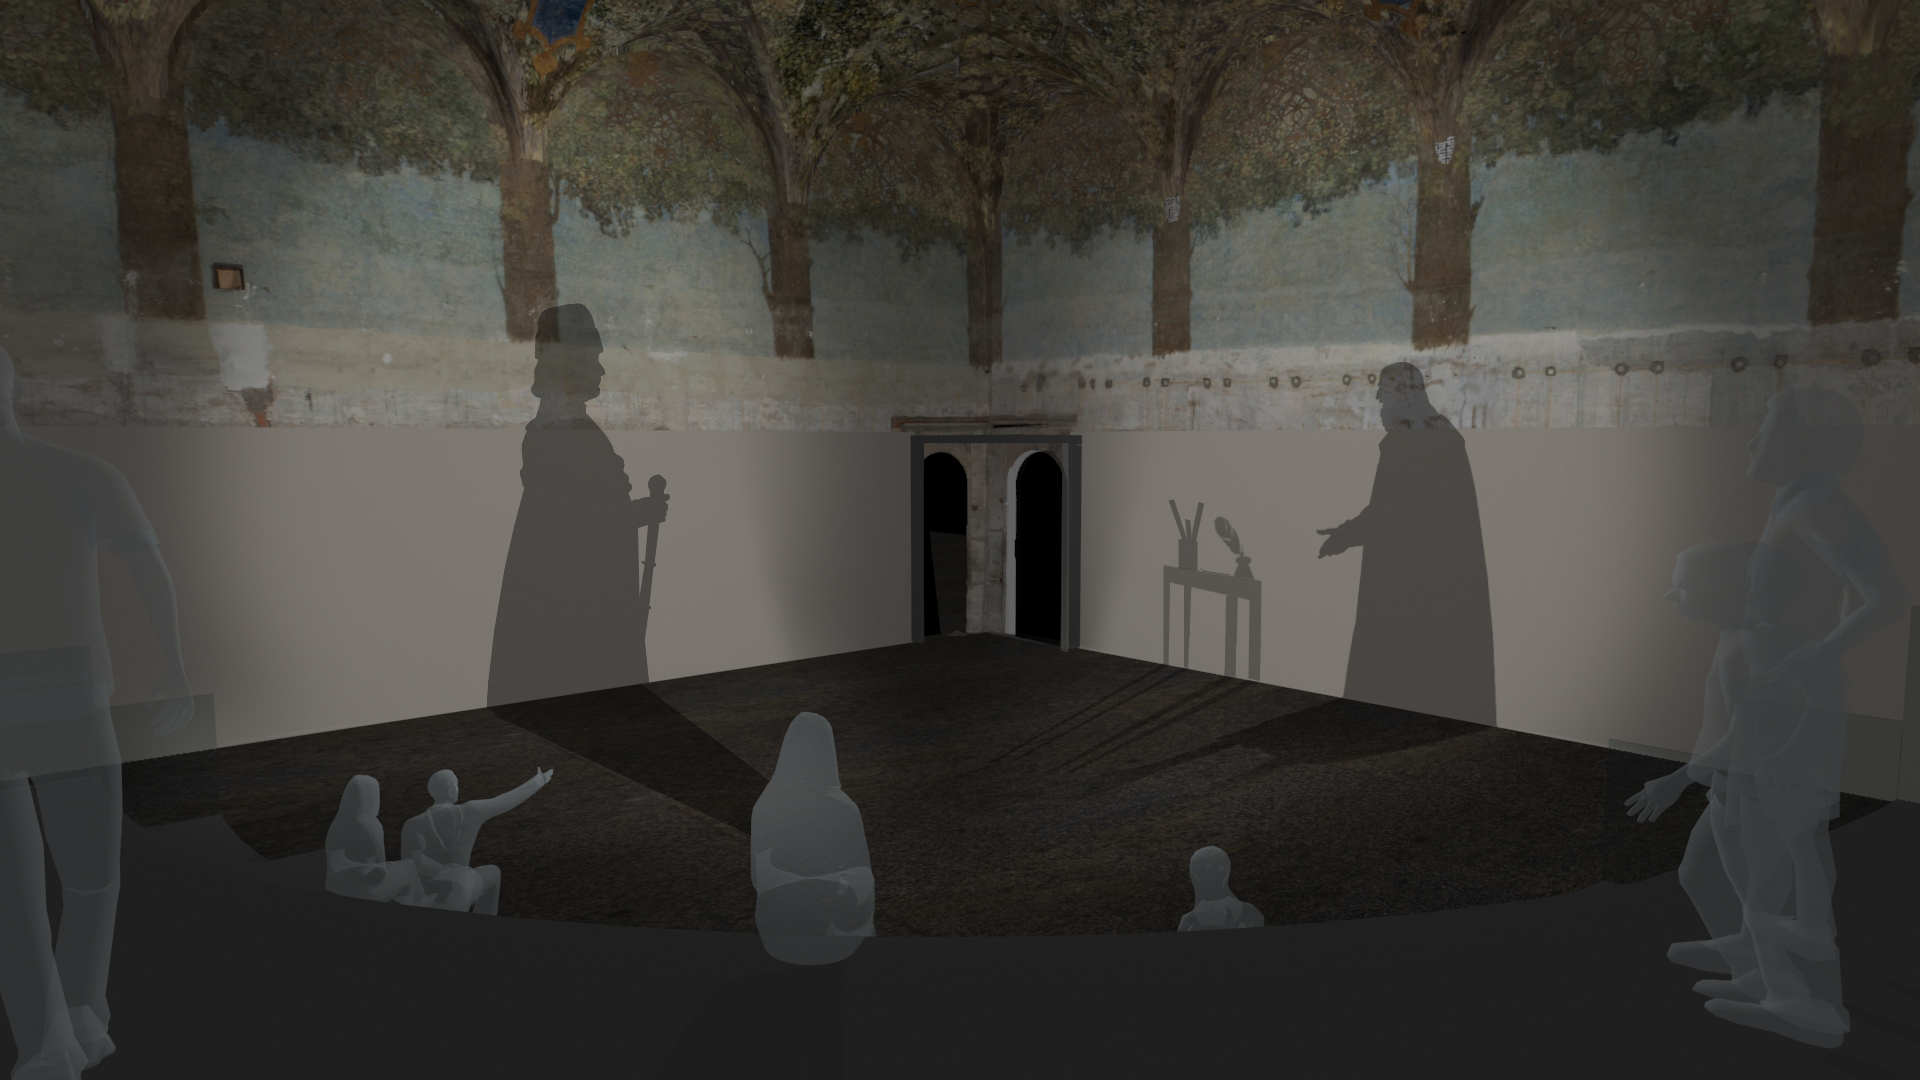 Rendering of multimedial projection    Project by Culturanuova s.r.l. - Massimo Chimenti